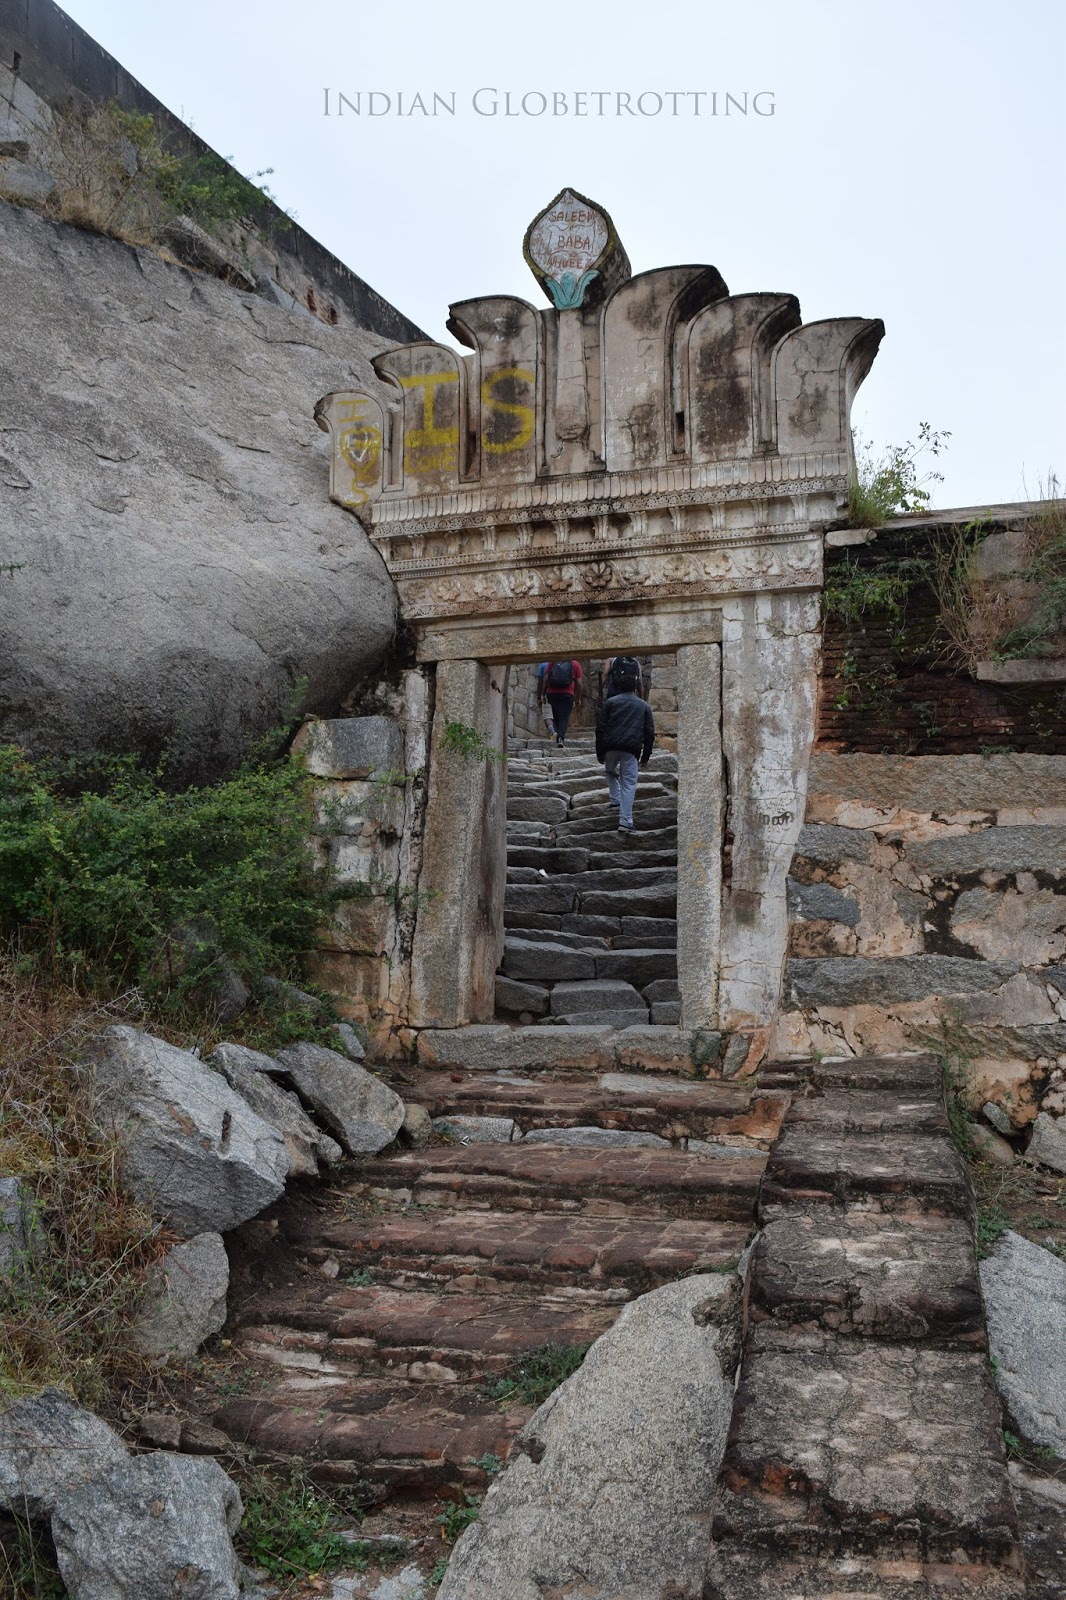 Gates that lead to madhugiri betta